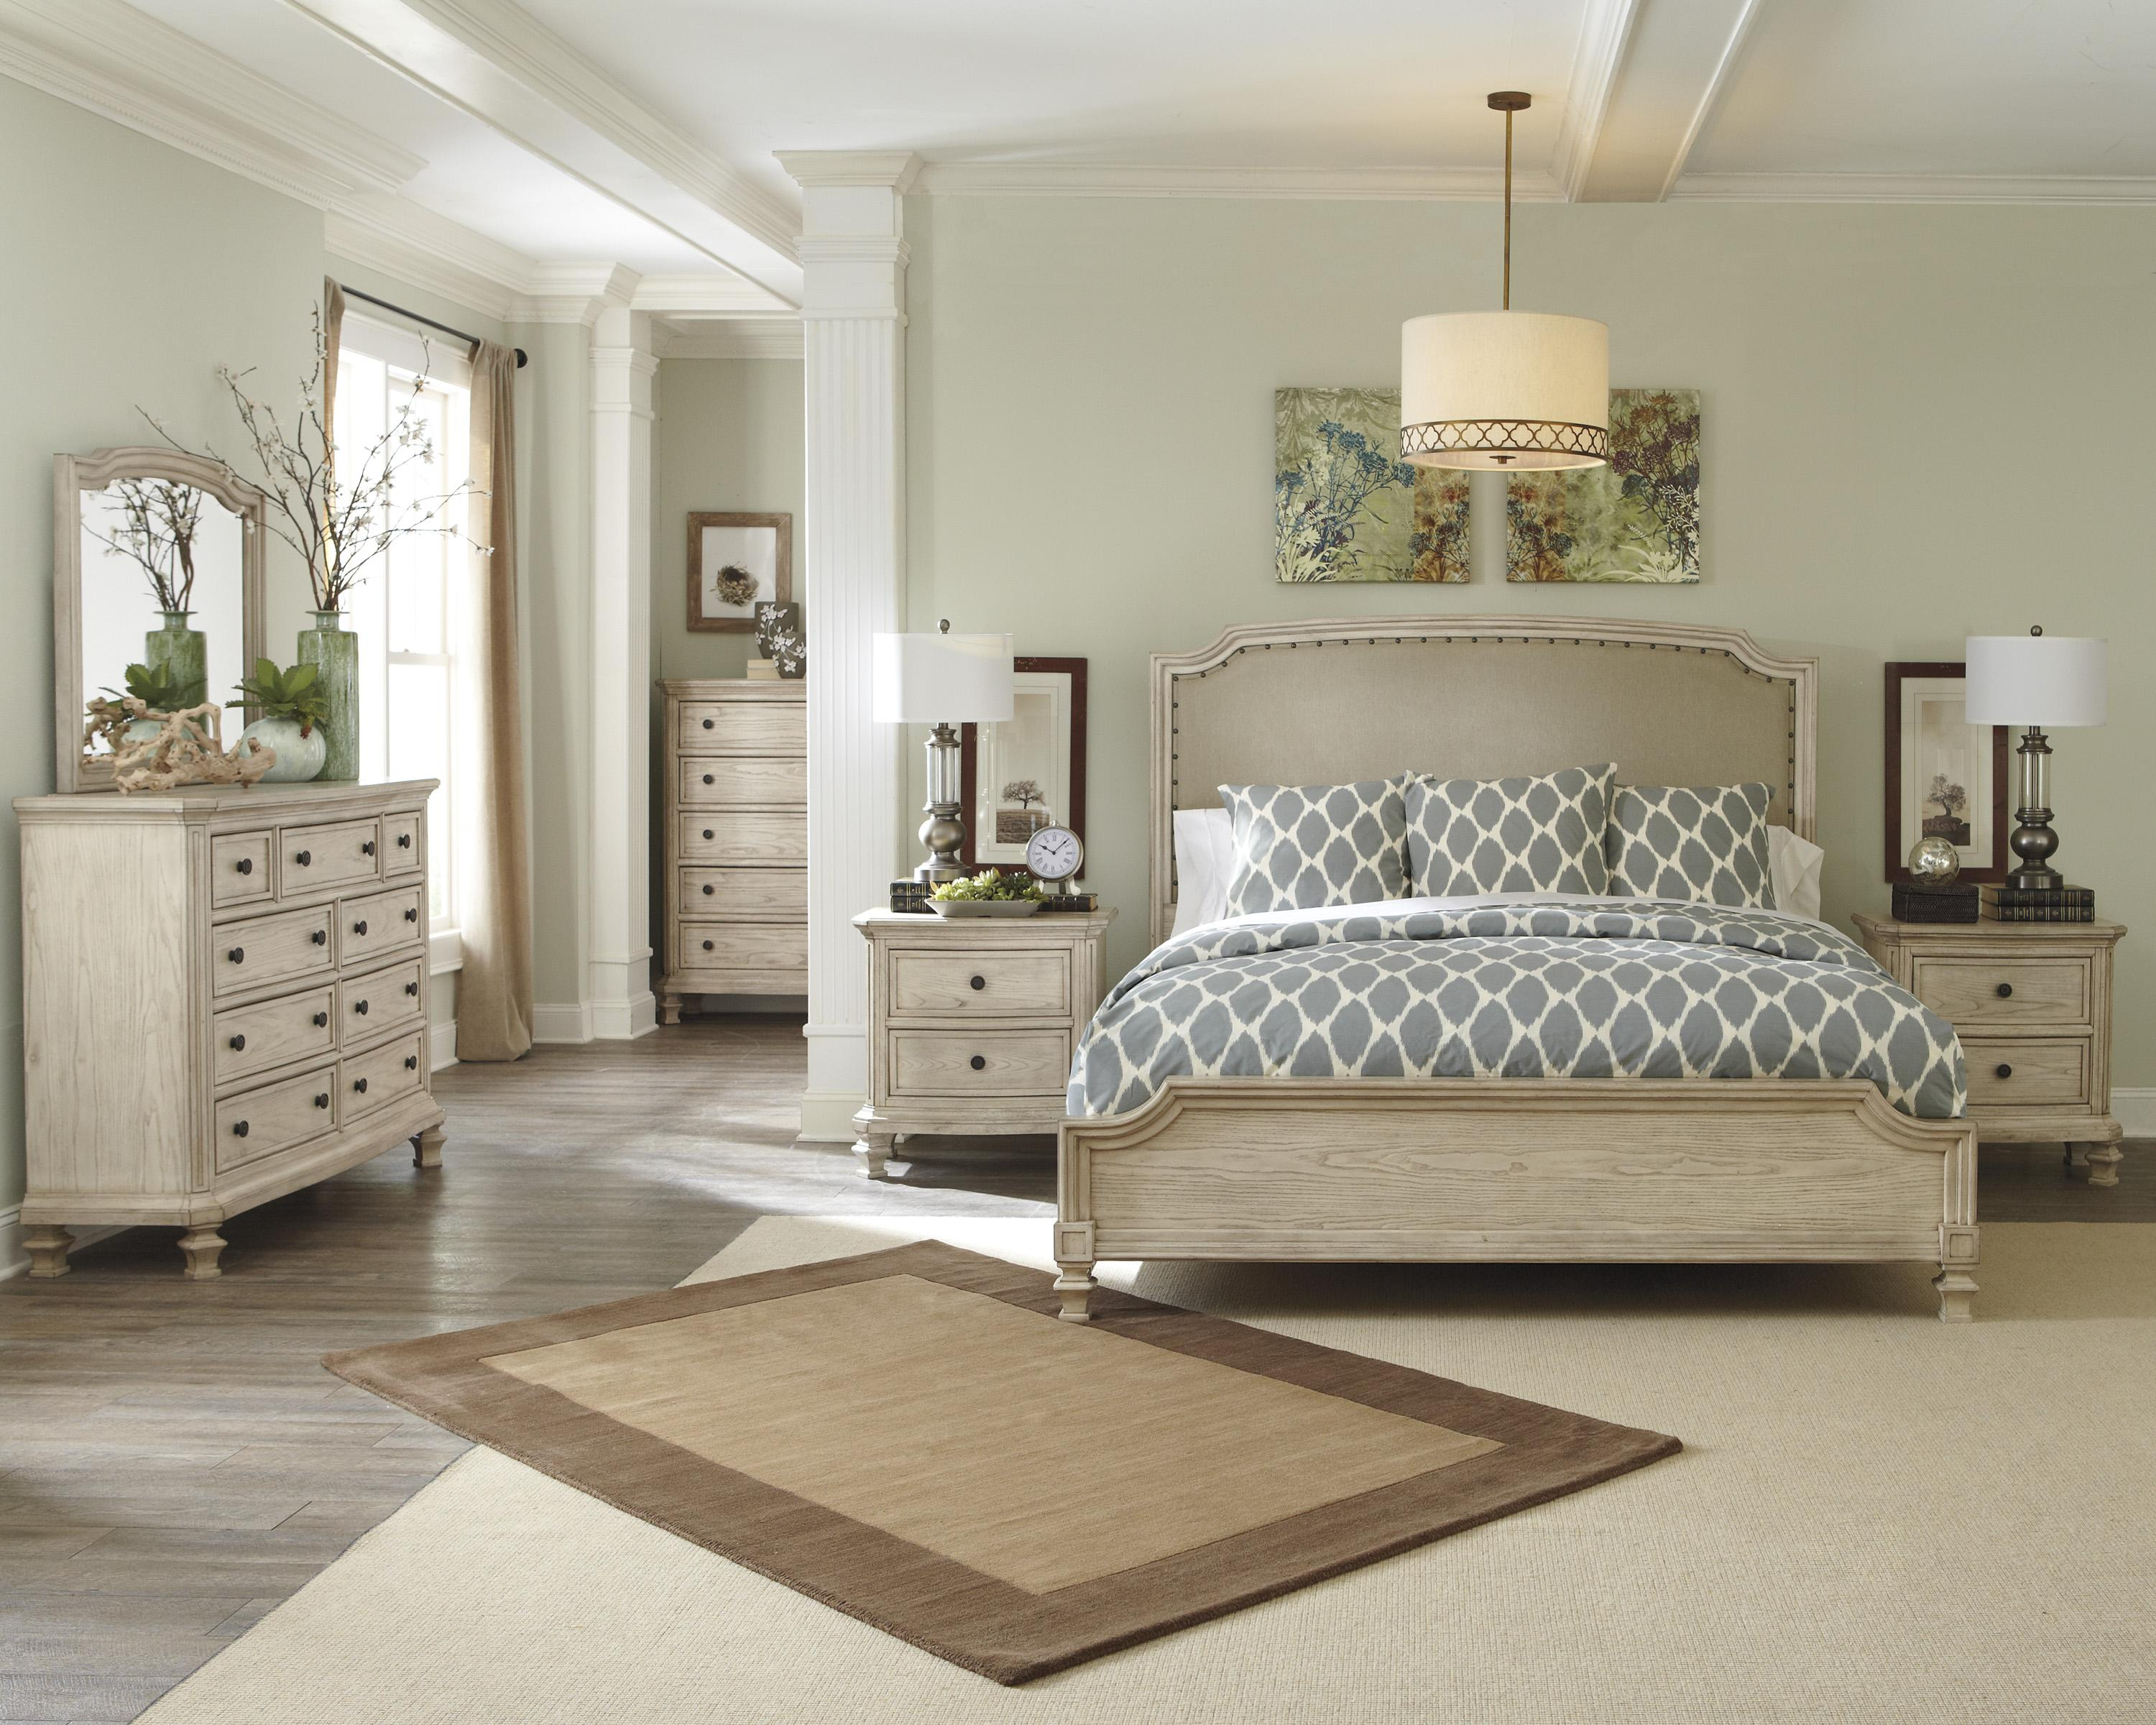 Signature Design by Ashley Demarlos Queen Bedroom Group - Item Number: B693 Q Bedroom Group 1